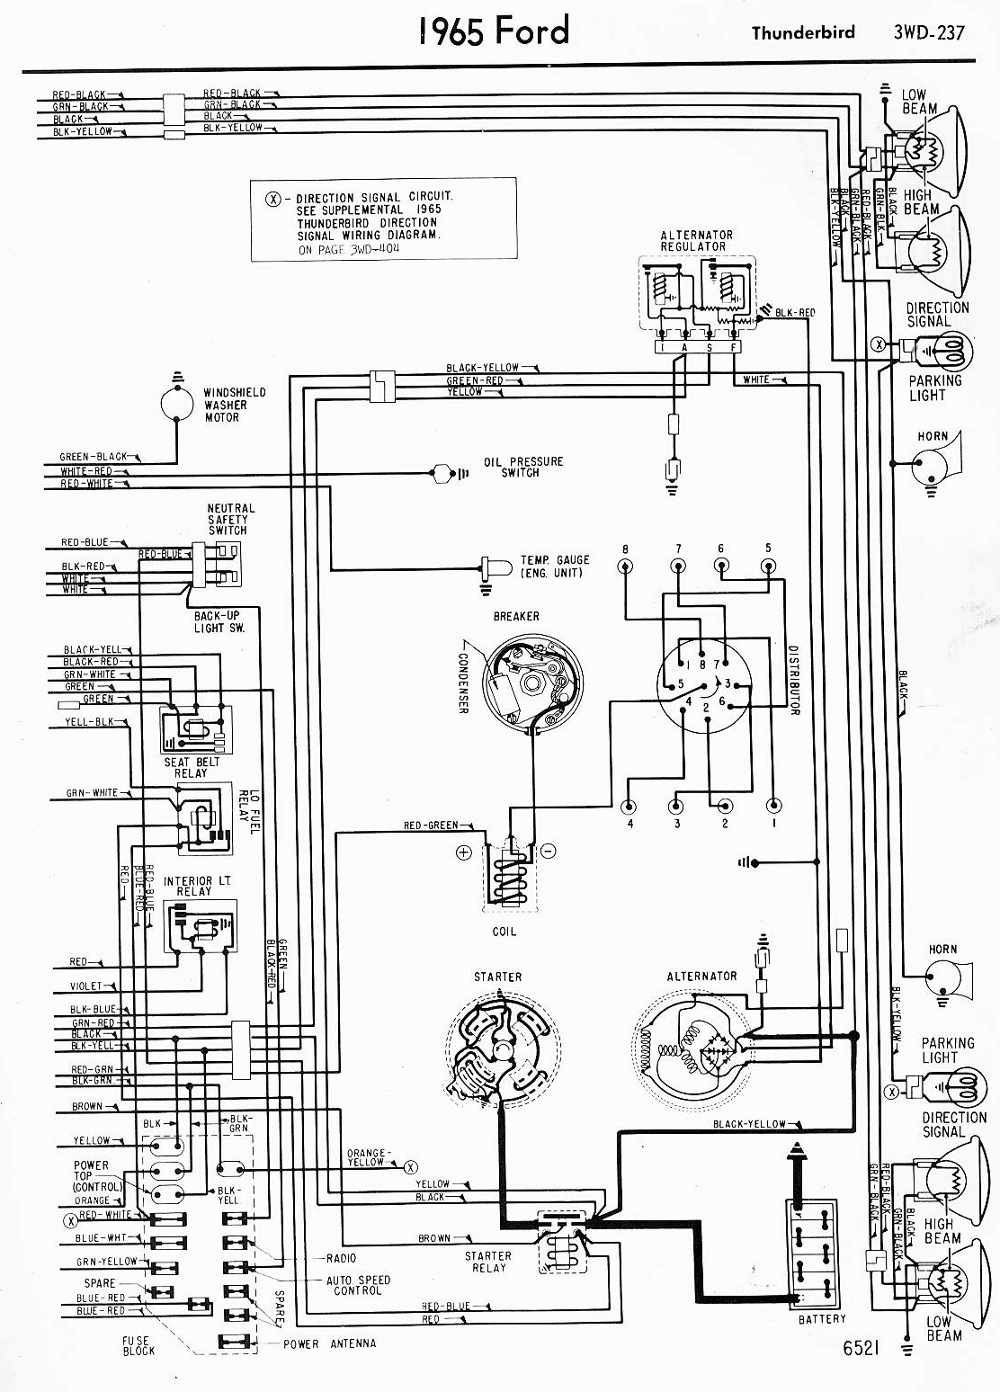 Fader Wiring Diagram 1964 Ford Library Automotive Schematics Fuse Box Falcon 65 T Bird Free Vehicle Diagrams U2022 Chevrolet Pickup